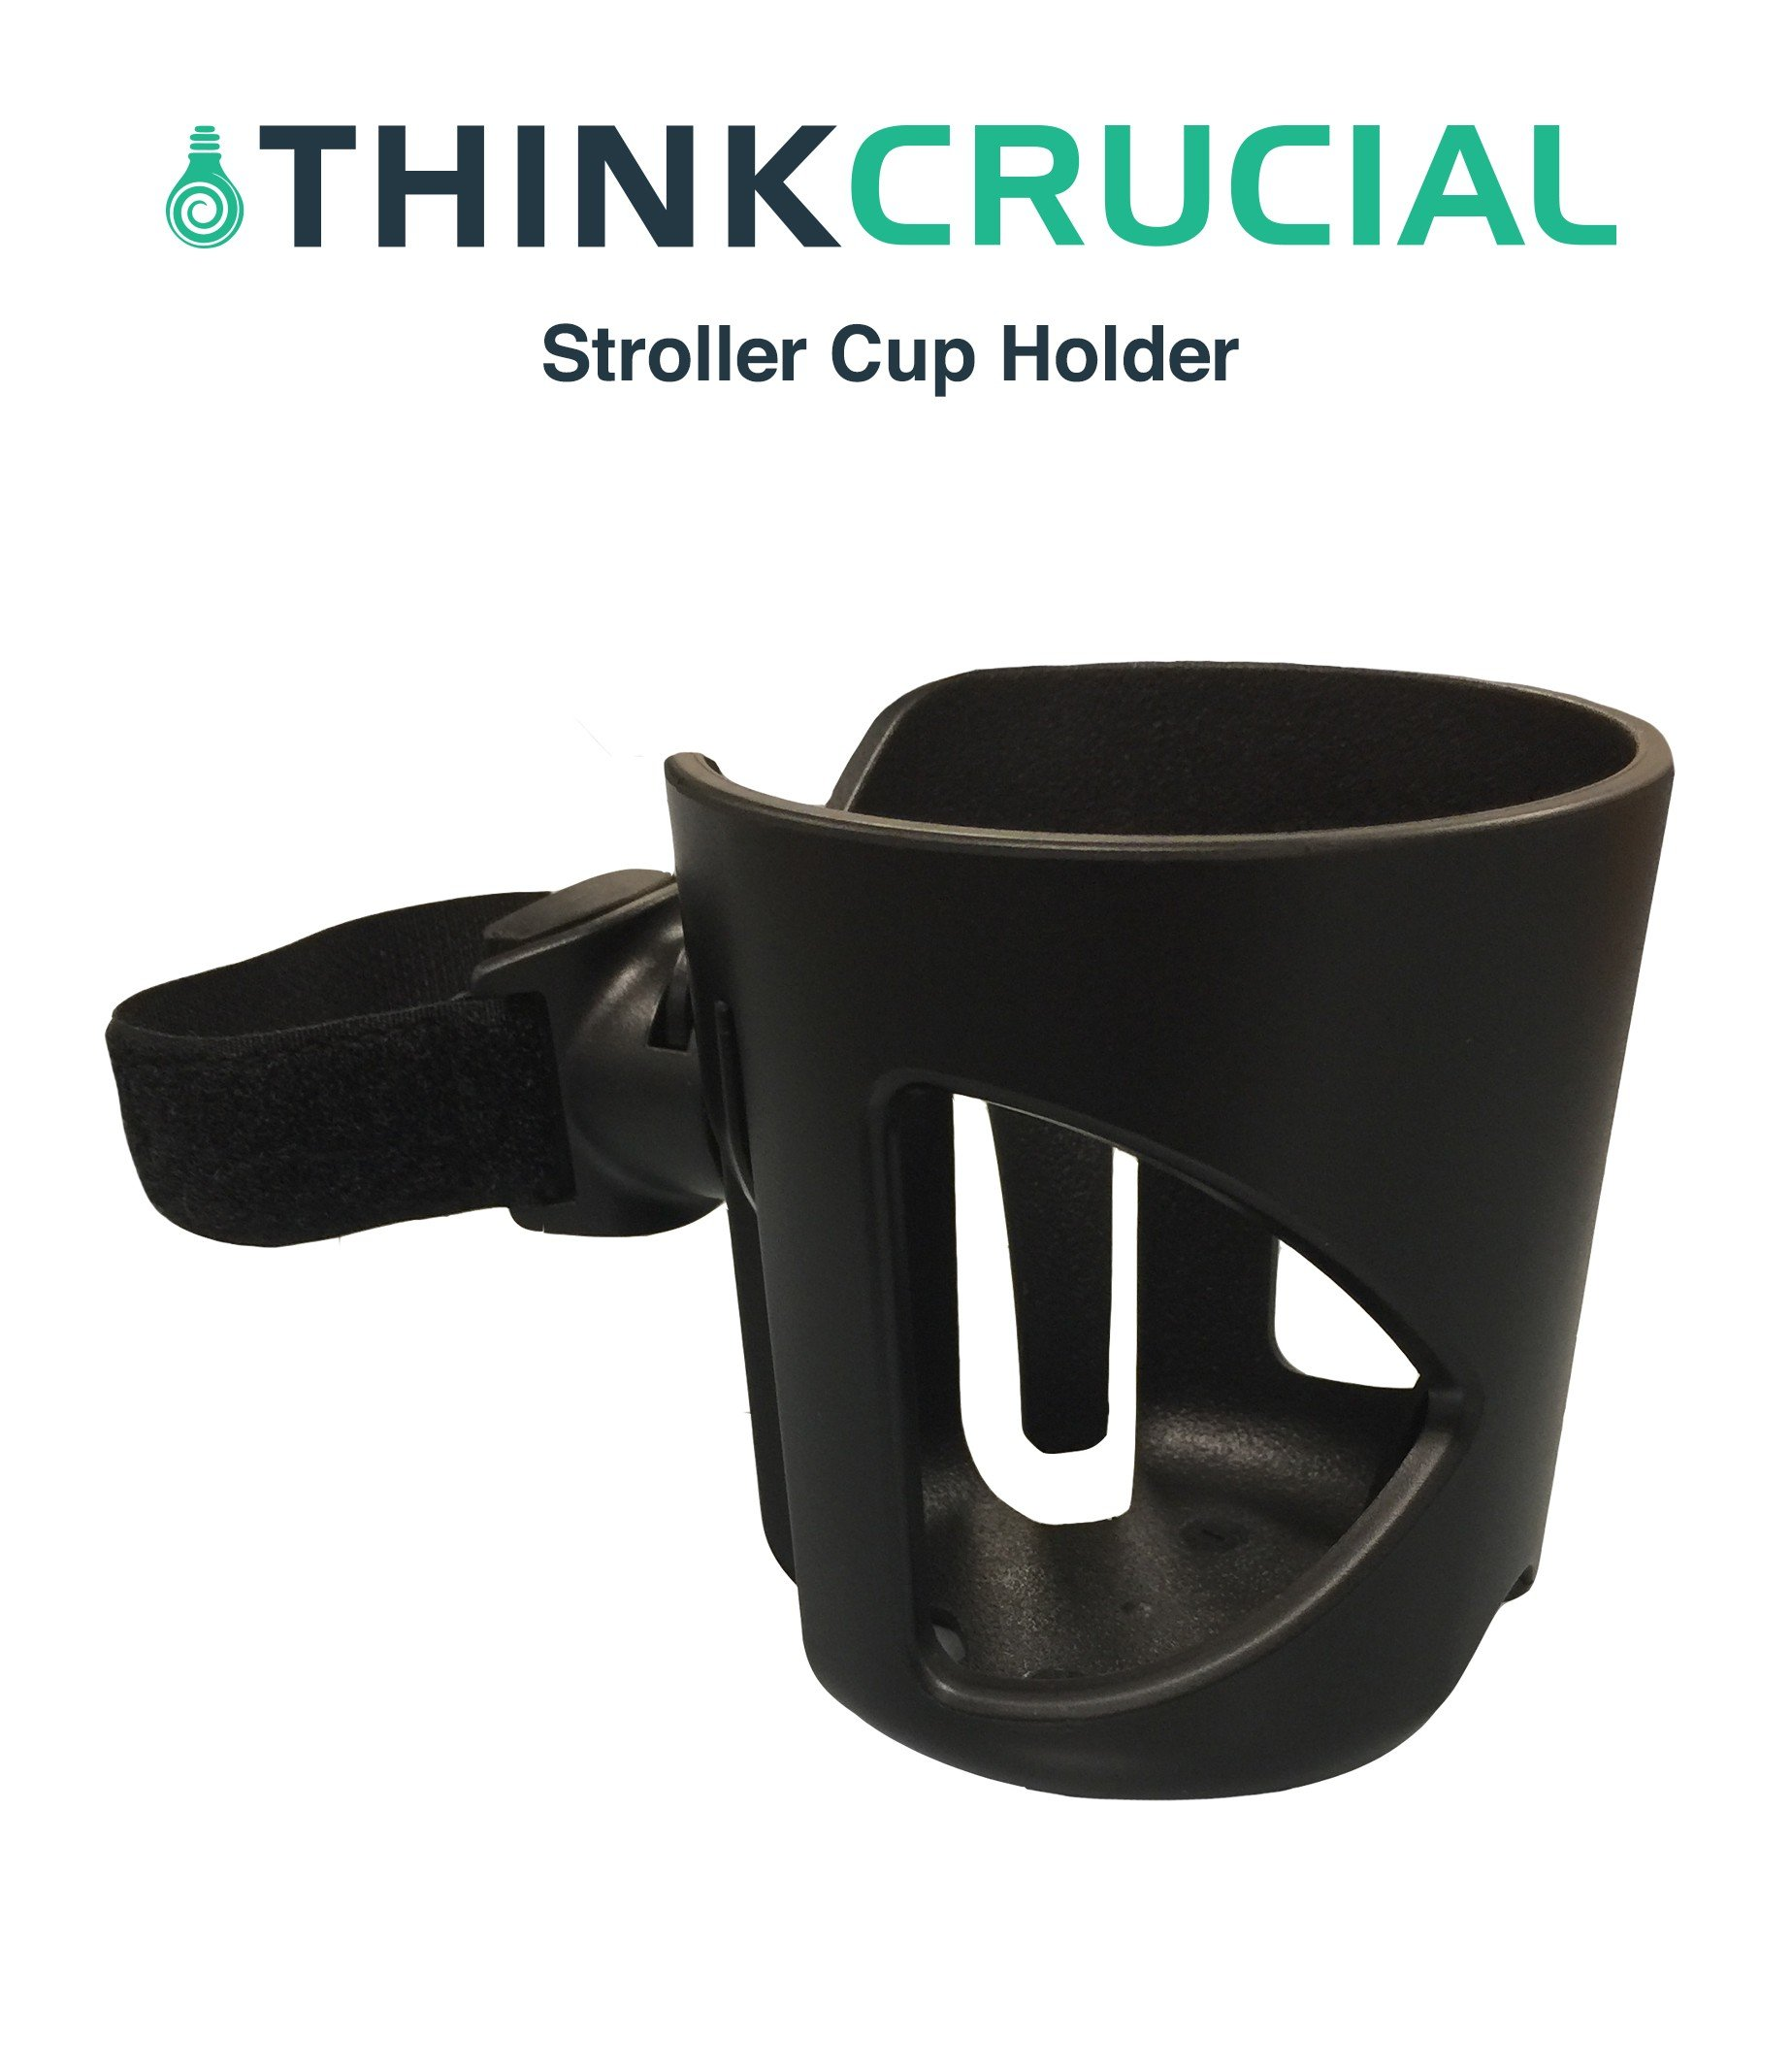 Replacement for Universal Stroller Cup Holder, Fits BabyHome, Baby Jogger, Britax, Bugaboo, Bumbleride, Chicco & More, by Think Crucial by Think Crucial (Image #1)